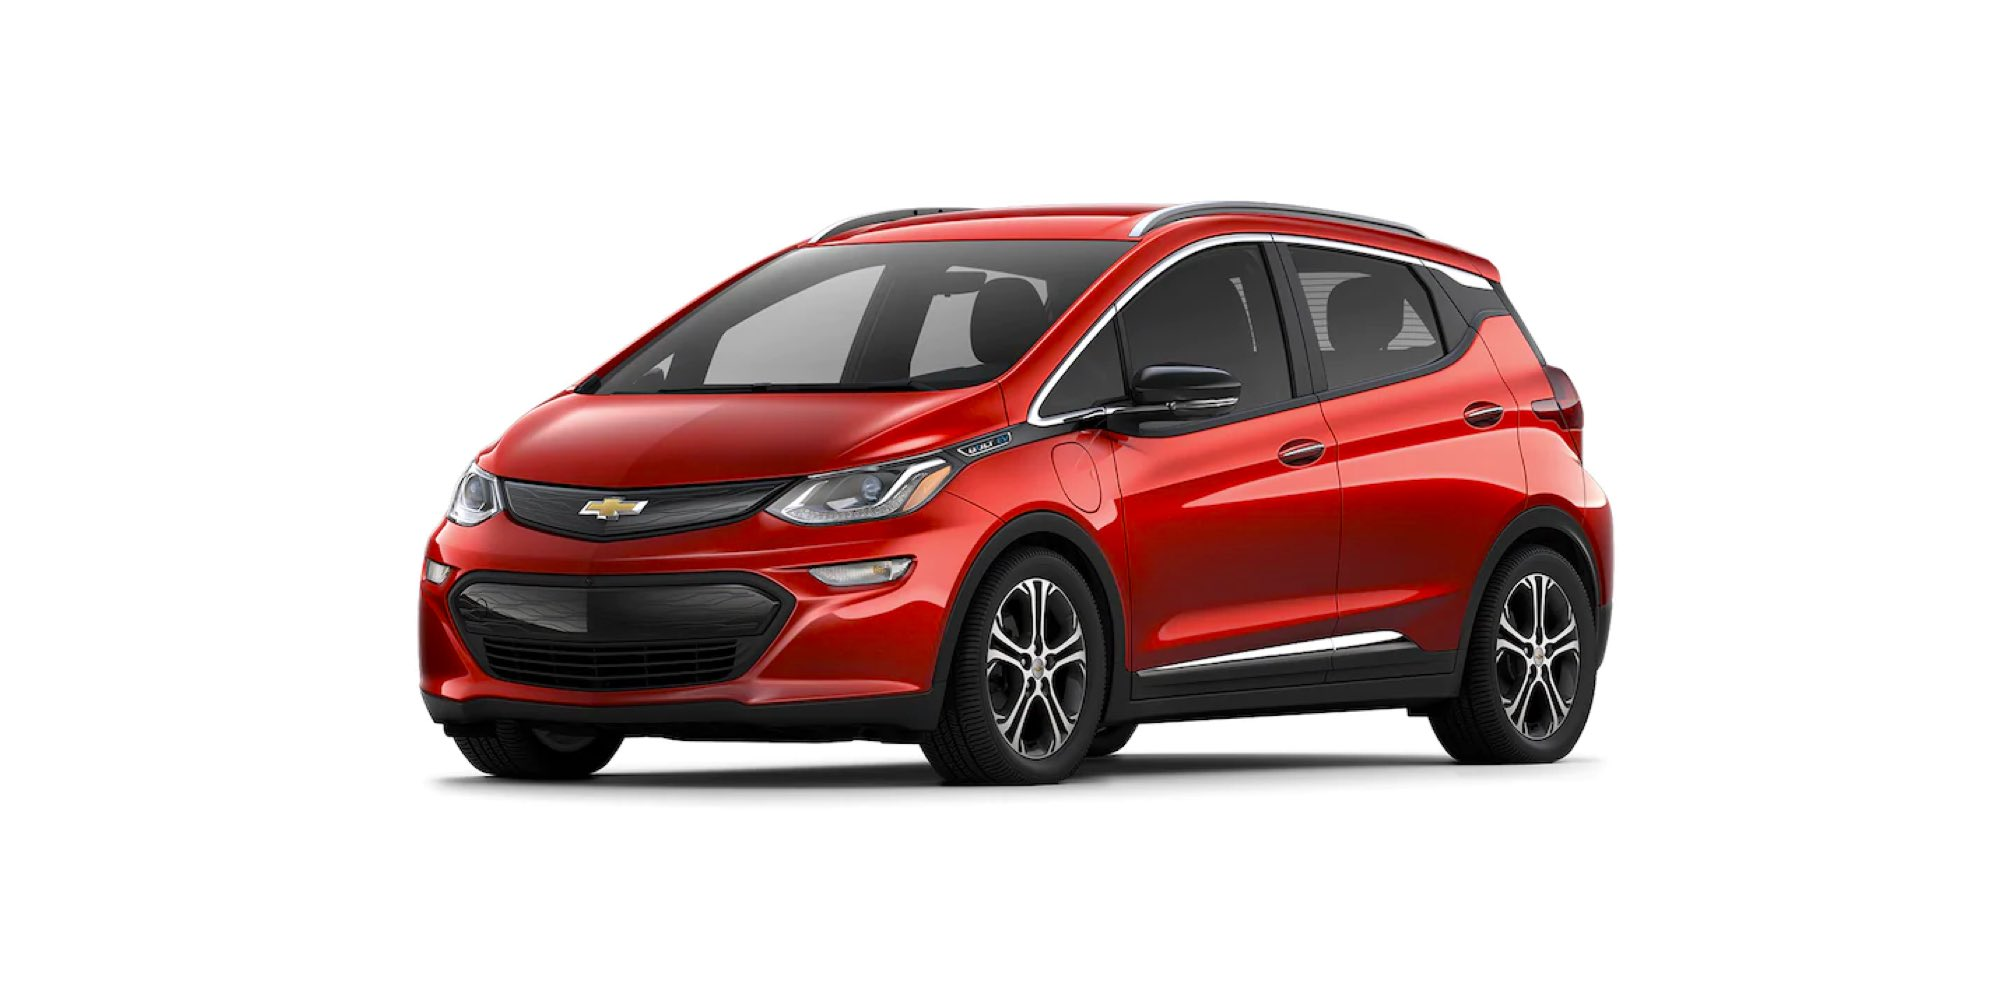 2021 Chevy Bolt in Cayenne Orange Metallic